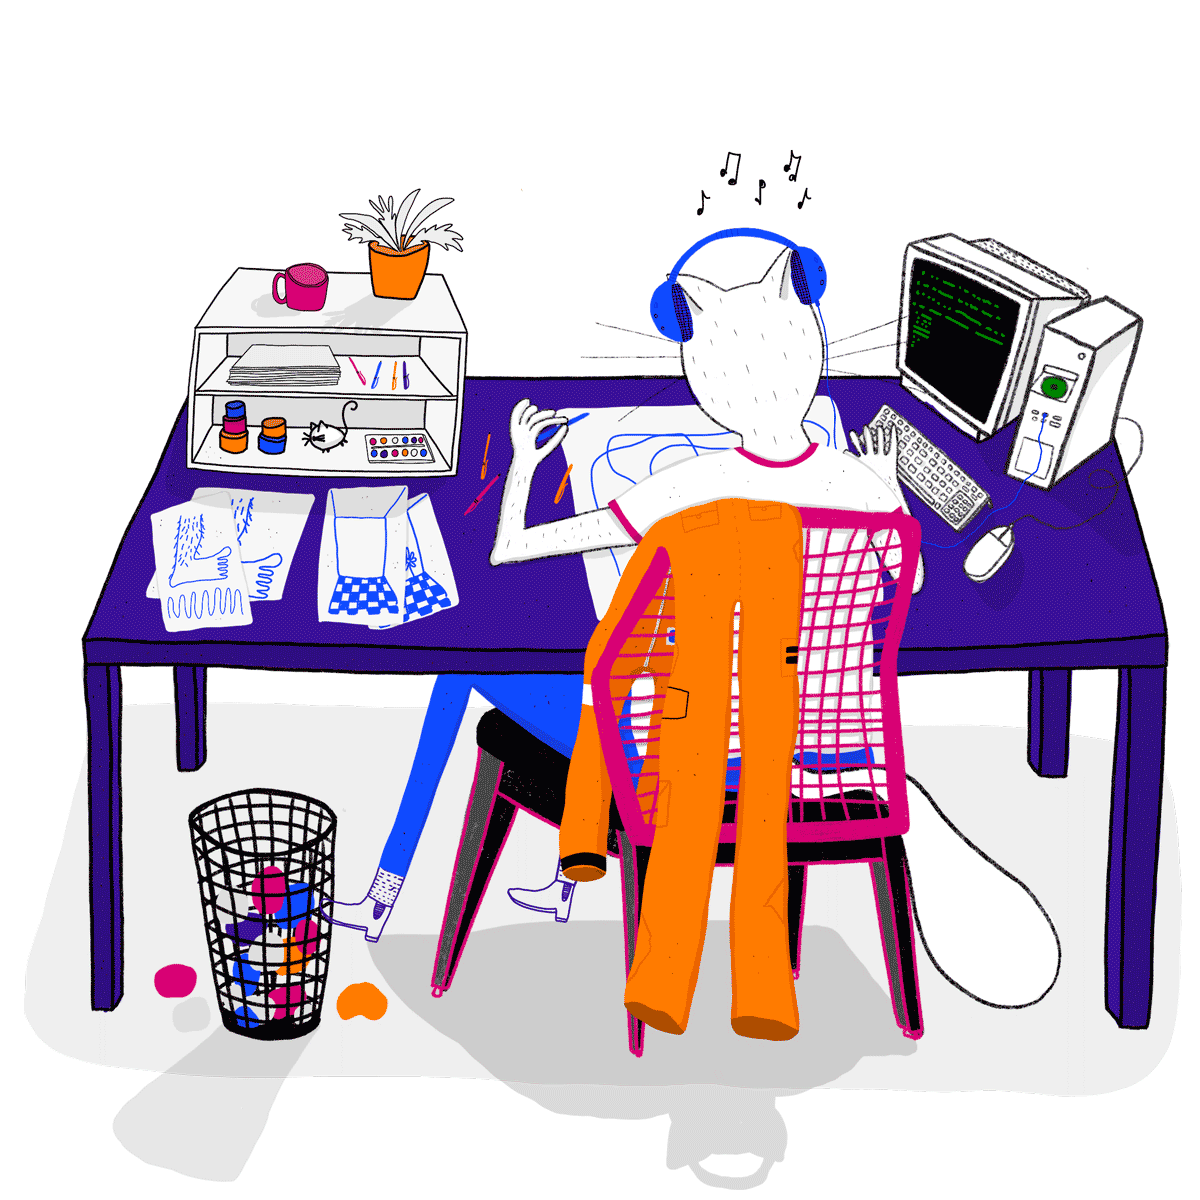 illustration of the behind view of a cat sitting in a chair at a desk drawing, surrounded by various things such as a desktop computer, other pages of drawings, and drawing tools. the iconic orange spacesuit that shitlord fuckerman performs in is draped over the backrest of the chair.